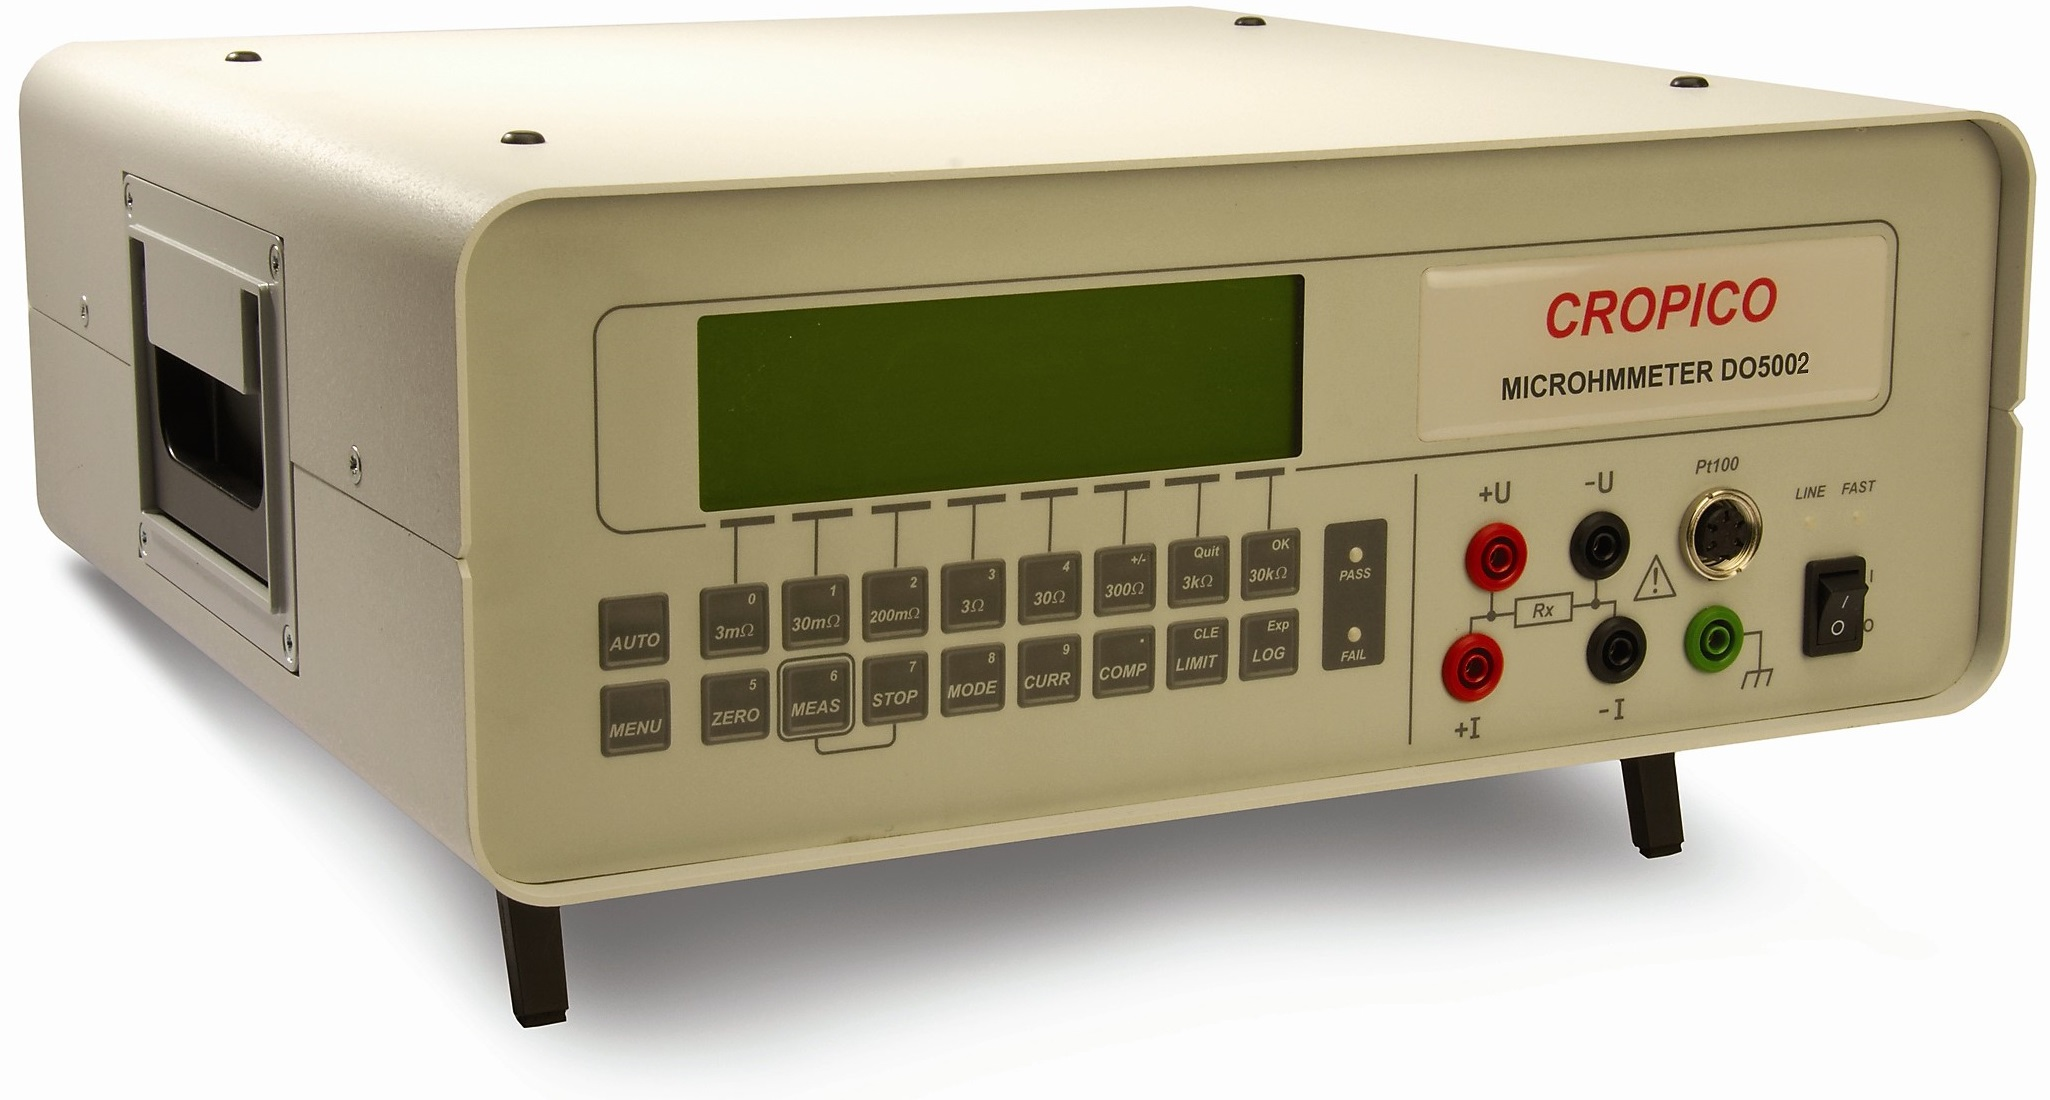 Cropico DO5000 series microOhmmeter